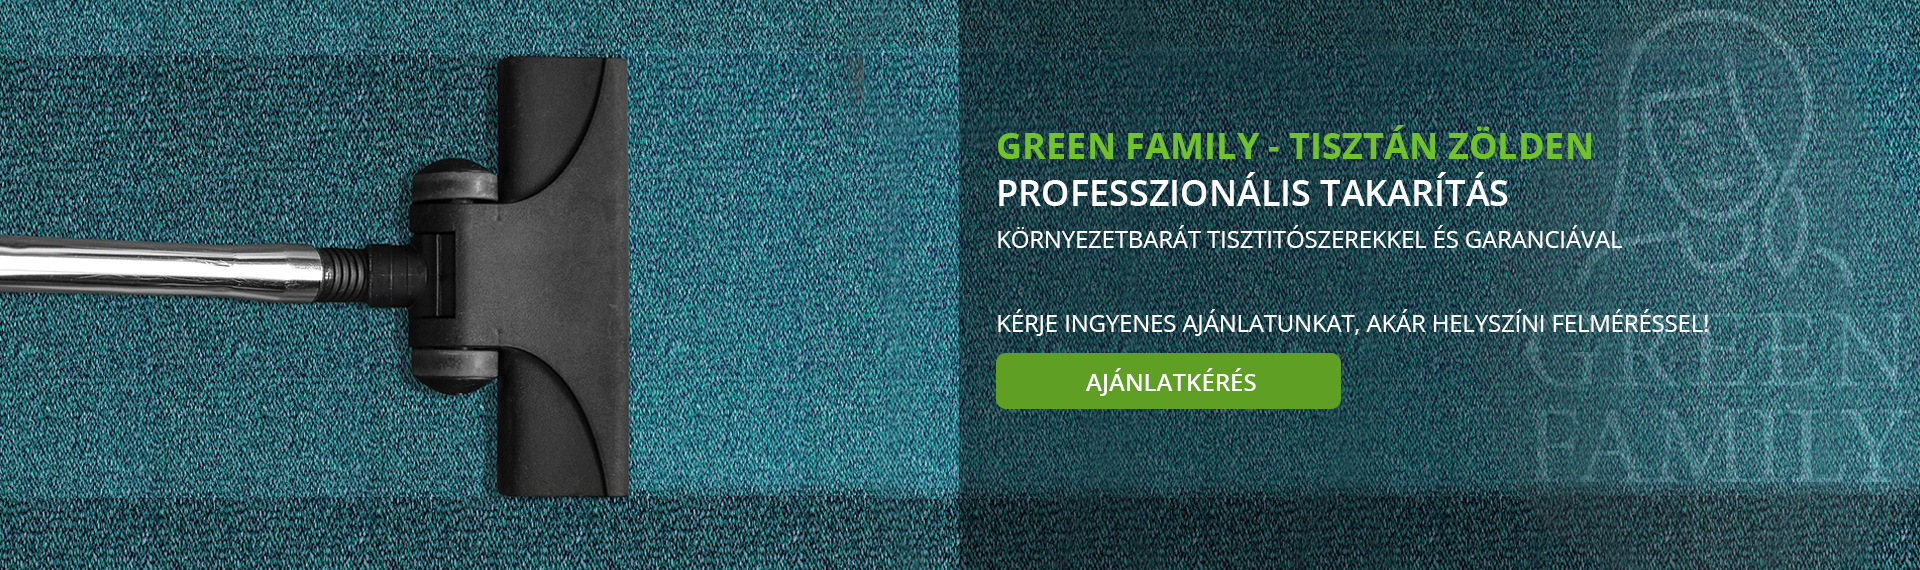 green-family-header-pc-002.png